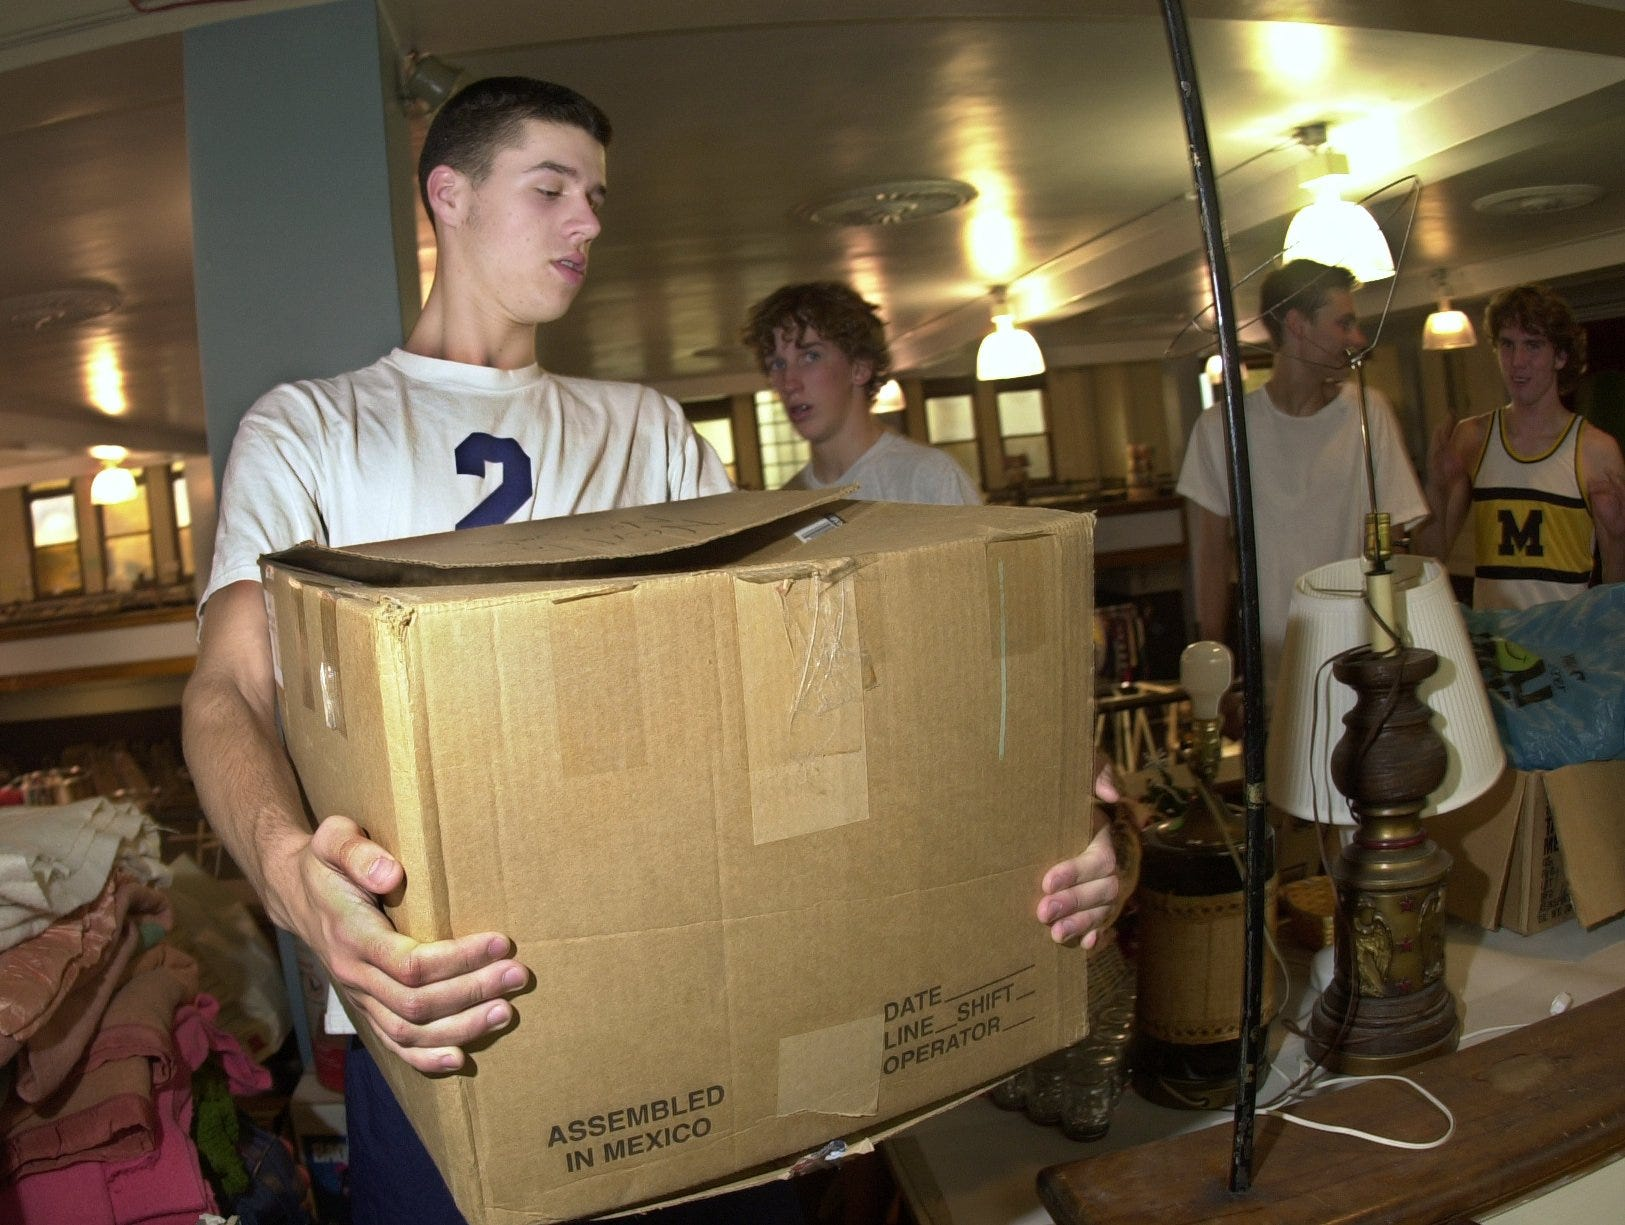 McQuaid volleyball star Dan O'Dell, together with teammates, helps organize a sale at Blessed Sacrament moving boxes and setting up tables. Friday Sept,. 7 2001.